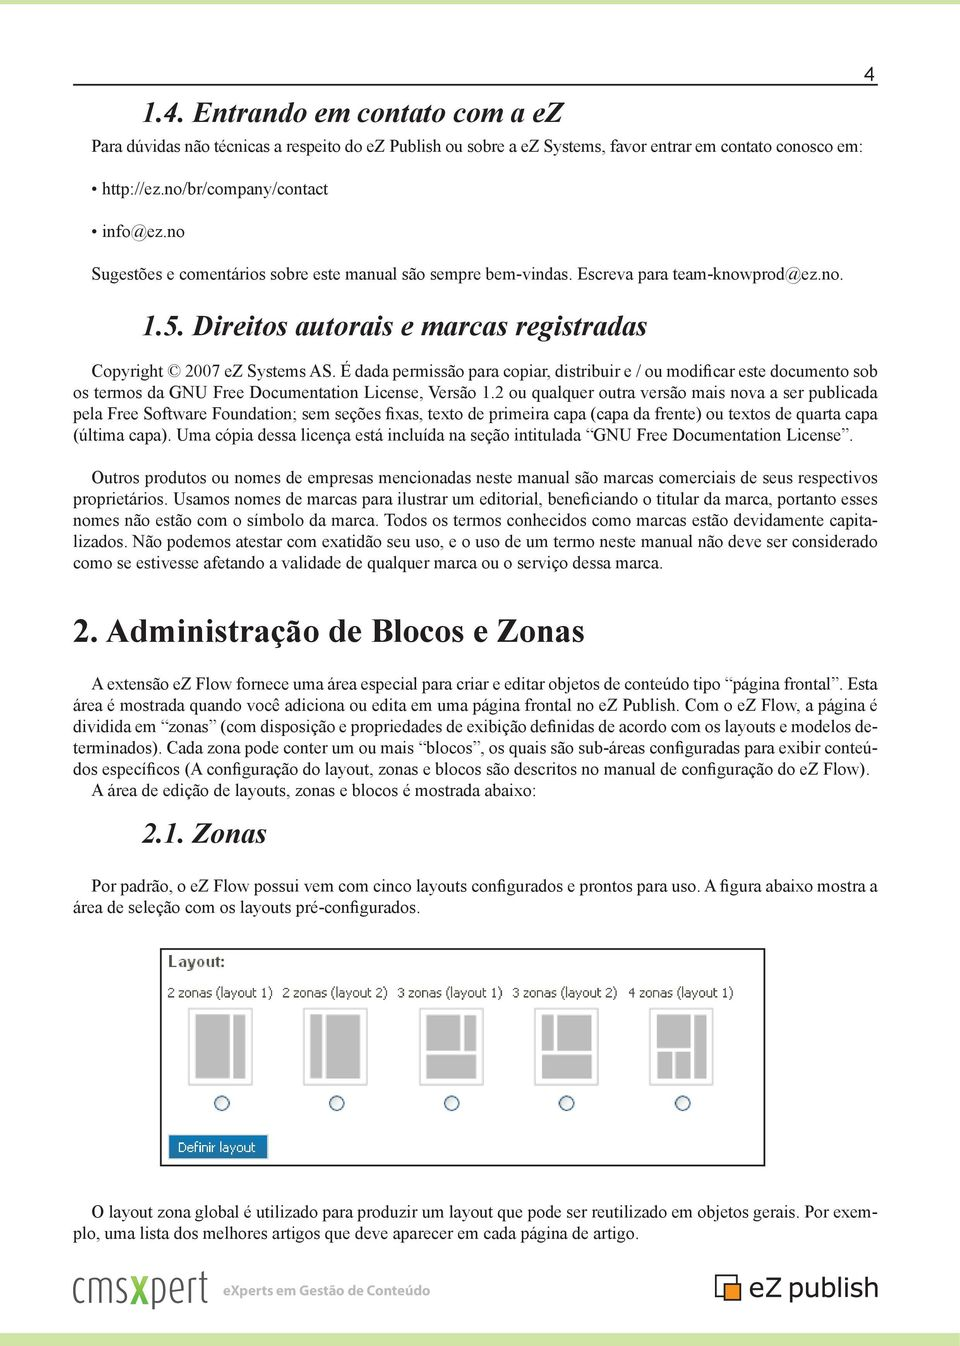 Direitos autorais e marcas registradas Copyright 2007 ez Systems AS. É dada permissão para copiar, distribuir e / ou modificar este documento sob os termos da GNU Free Documentation License, Versão 1.